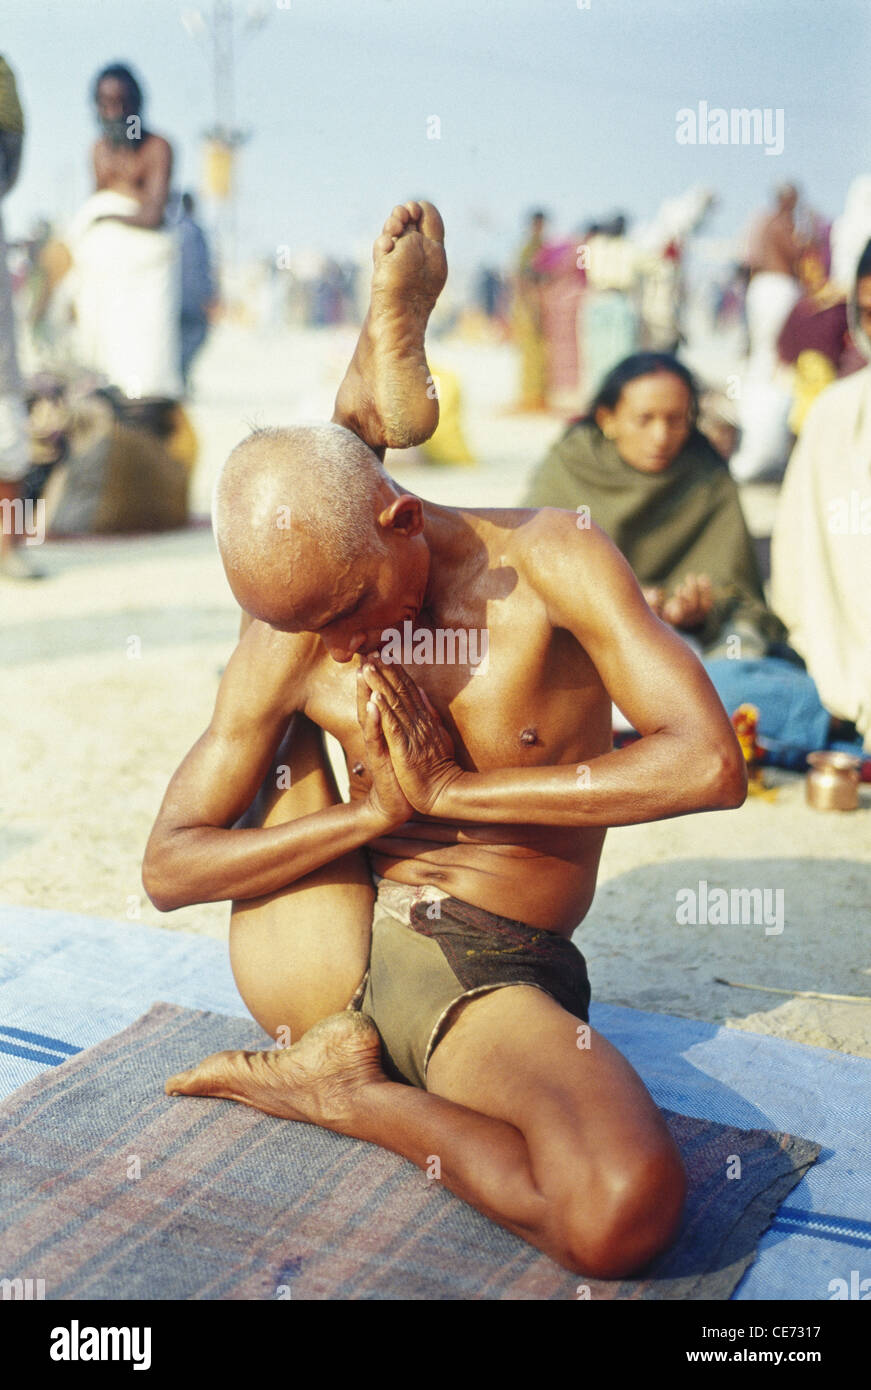 SOA 81803 Indian Man Difficult Twisted Complicated Yoga Pose Kumbh Fair Allahabad Uttar Pradesh India